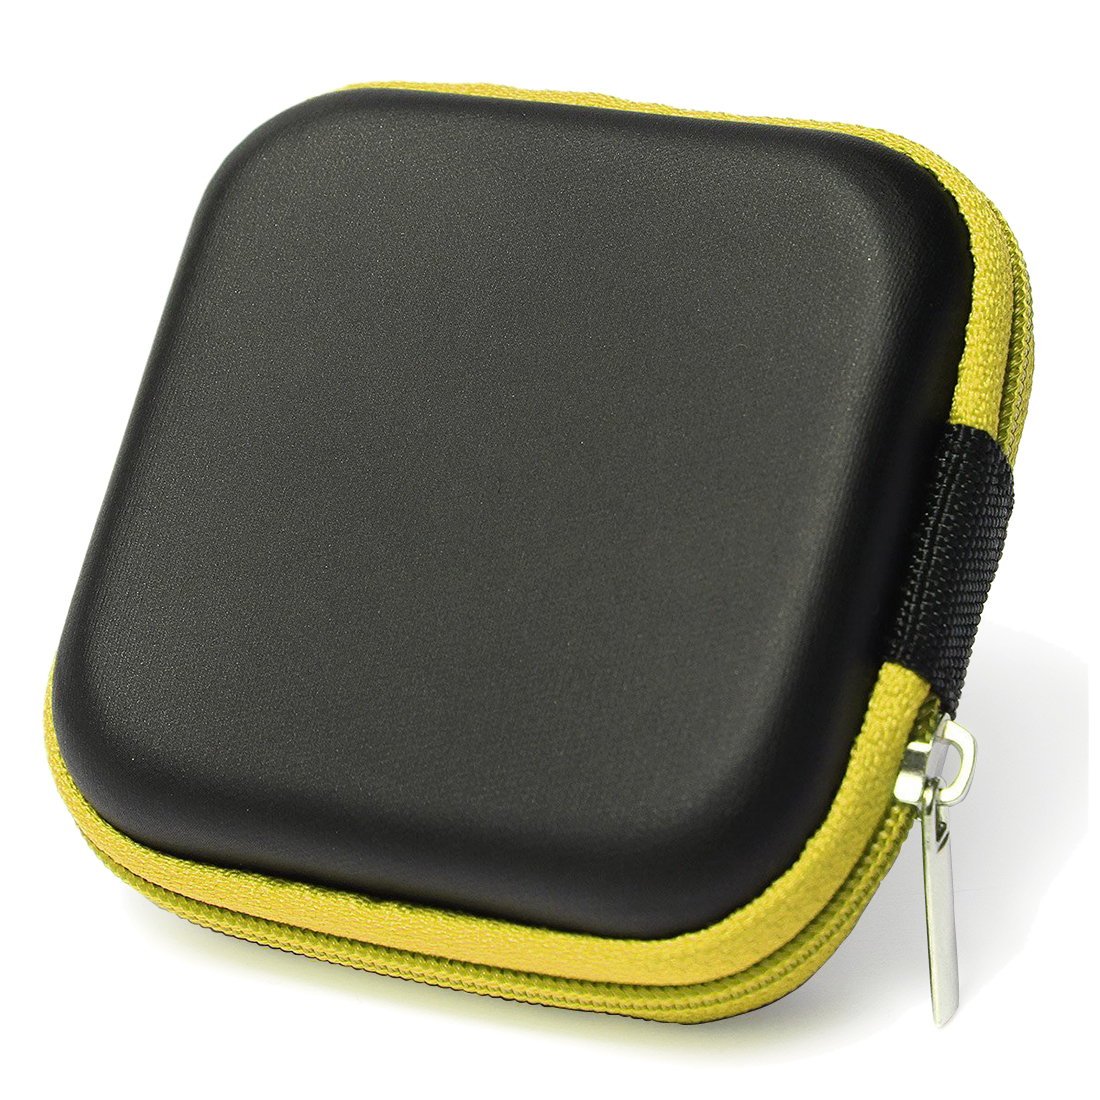 Cover Case Protective Case Earphone Case Simple Design Cued for Headphone Cables Coin or any other small yellow object